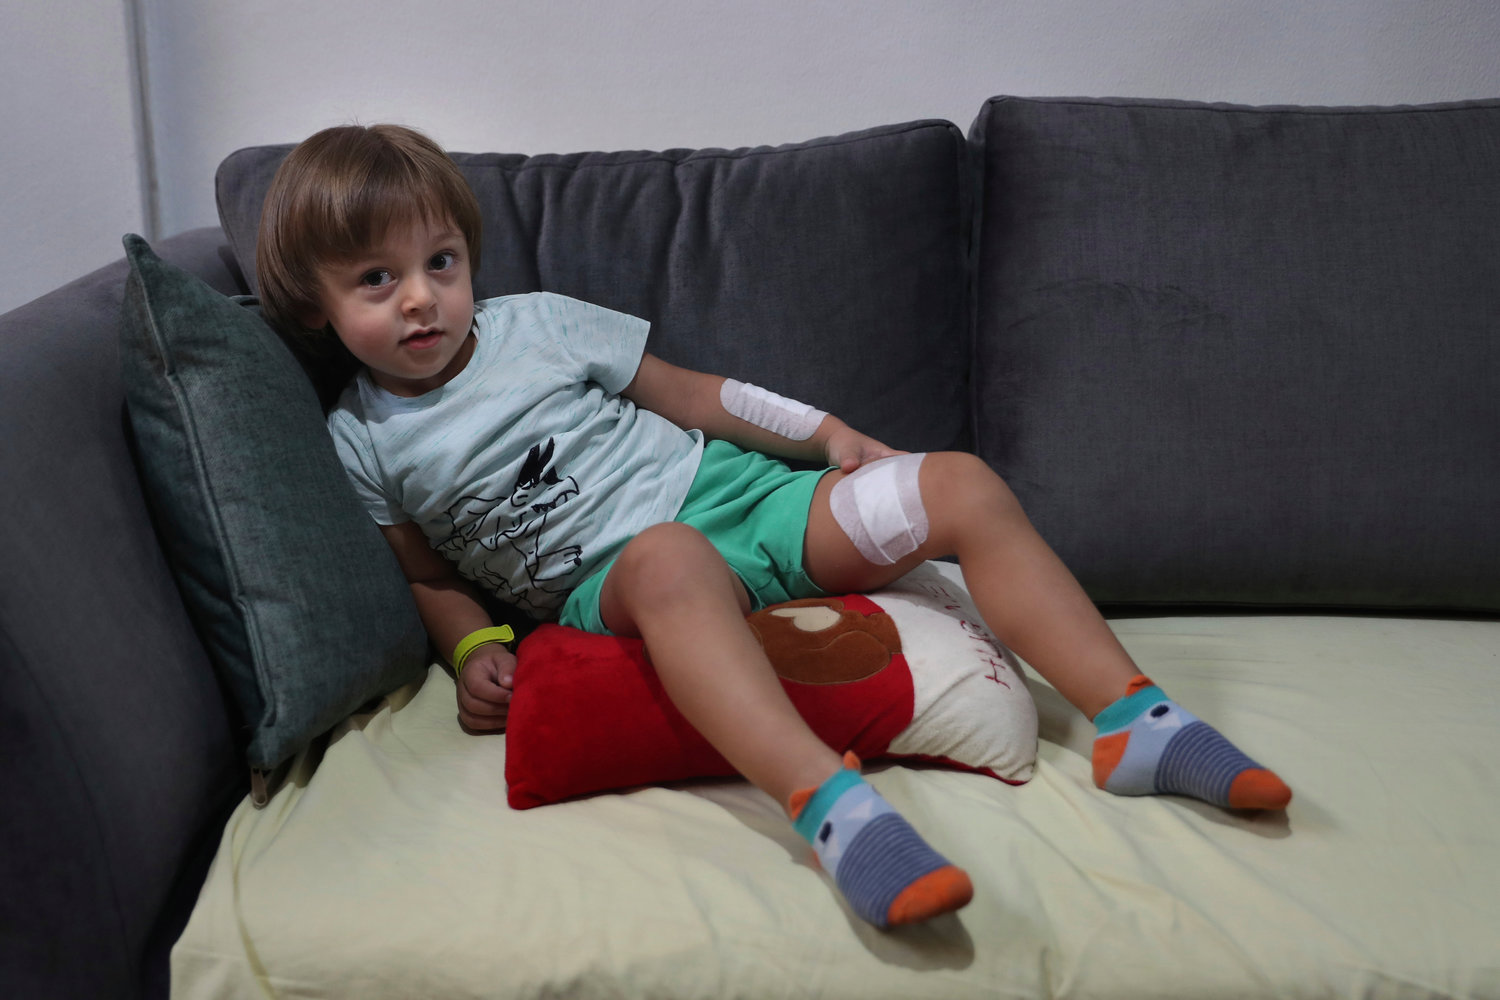 Three-year-old Abed Itani lies on a sofa at his family house in Beirut, Lebanon, Tuesday, Aug. 11, 2020. Abed was playing with his Lego blocks when the huge blast ripped through Beirut, shattering the nearby glass doors. He had cuts on his tiny arms and feet, a head injury, and was taken to the emergency room, where he sat amid other bleeding people. (AP Photo/Bilal Hussein)